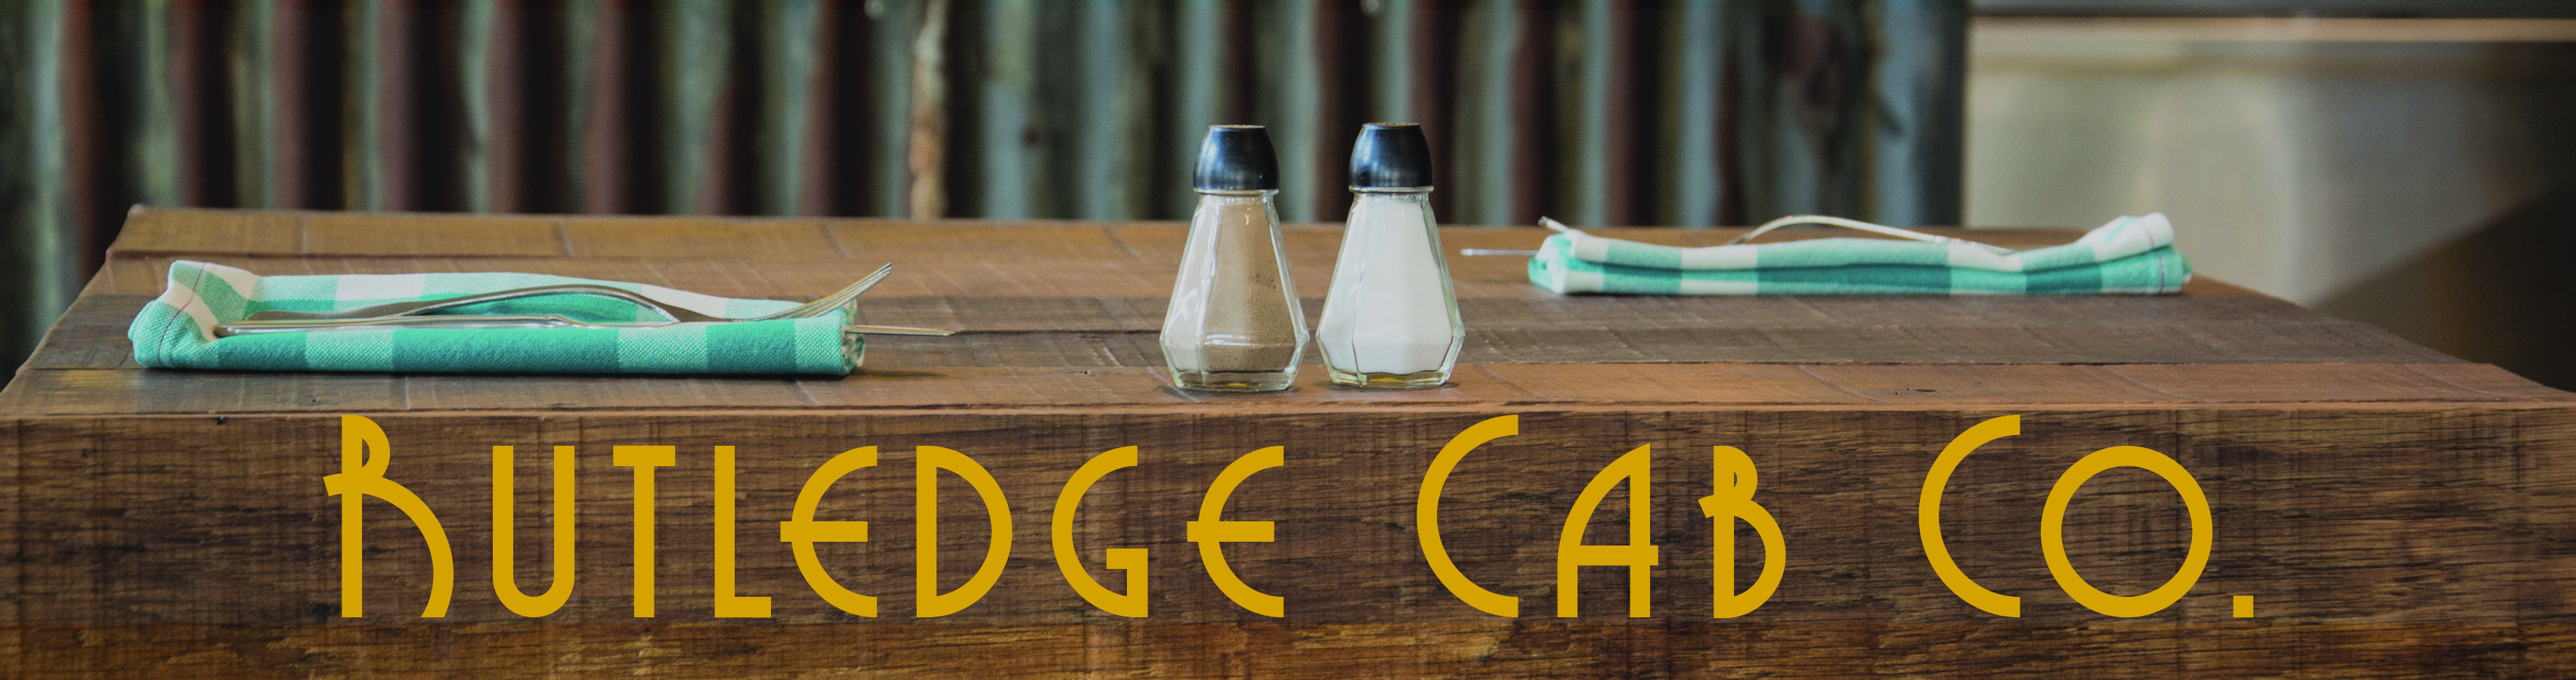 Rutledge Cab Co Is A Hip Restaurant With Retro Mentality Located In The Wagener Terrace Subdivision Downtown Charleston